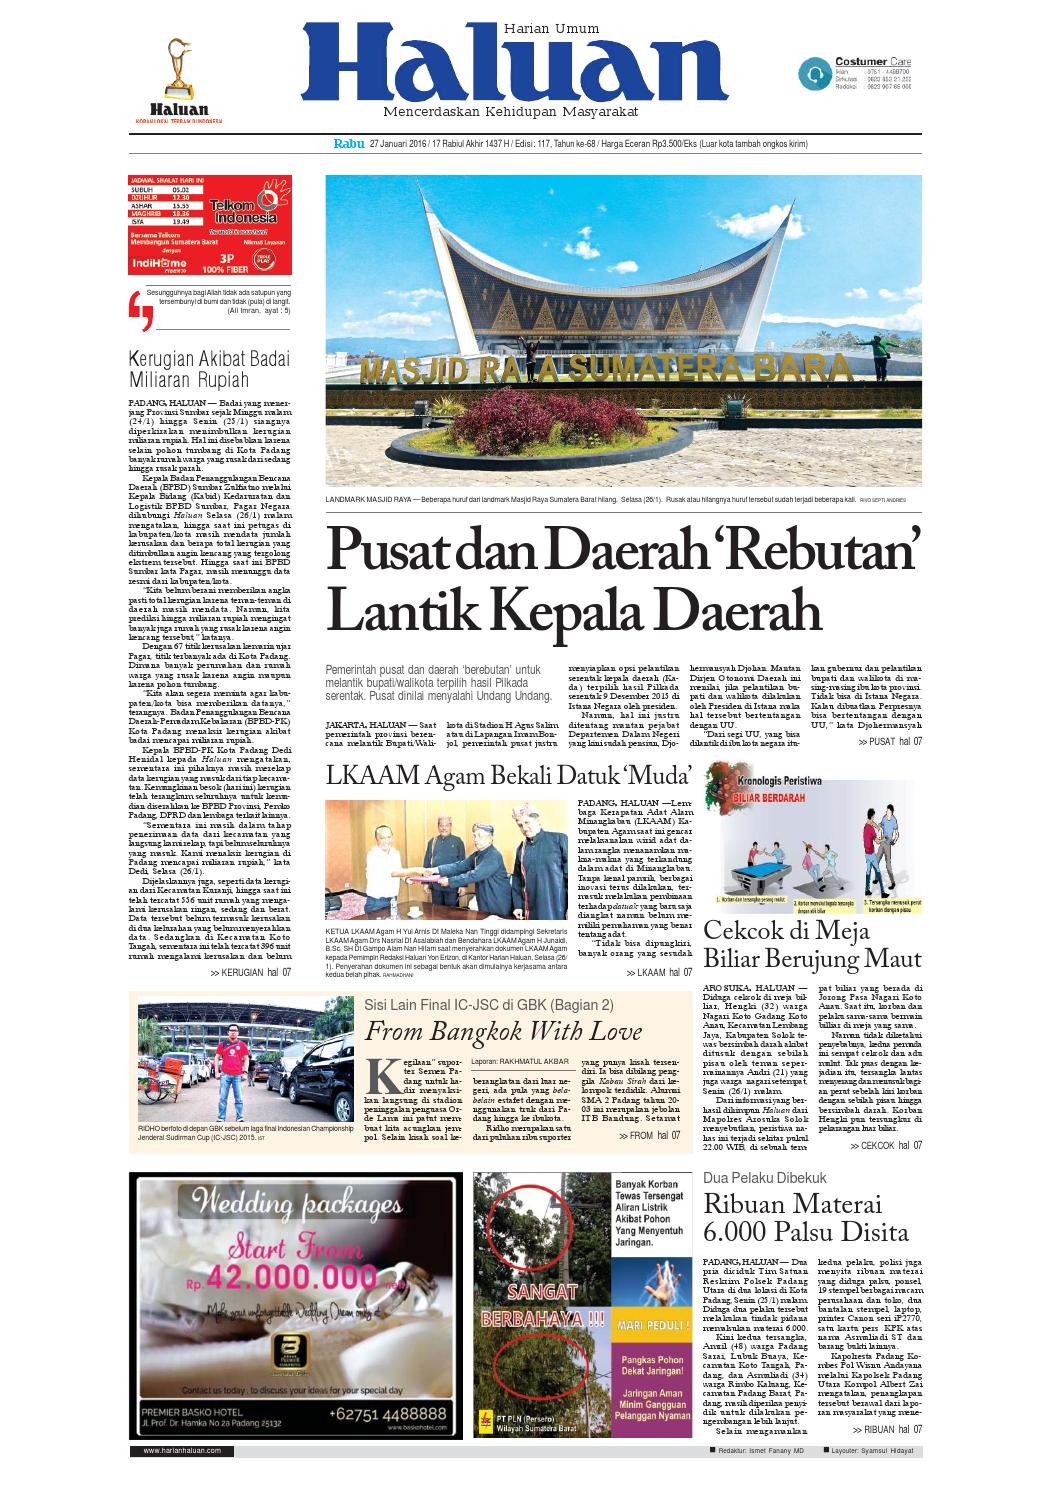 Haluan 27 Januari 2016 By Harian Issuu Paket Firia